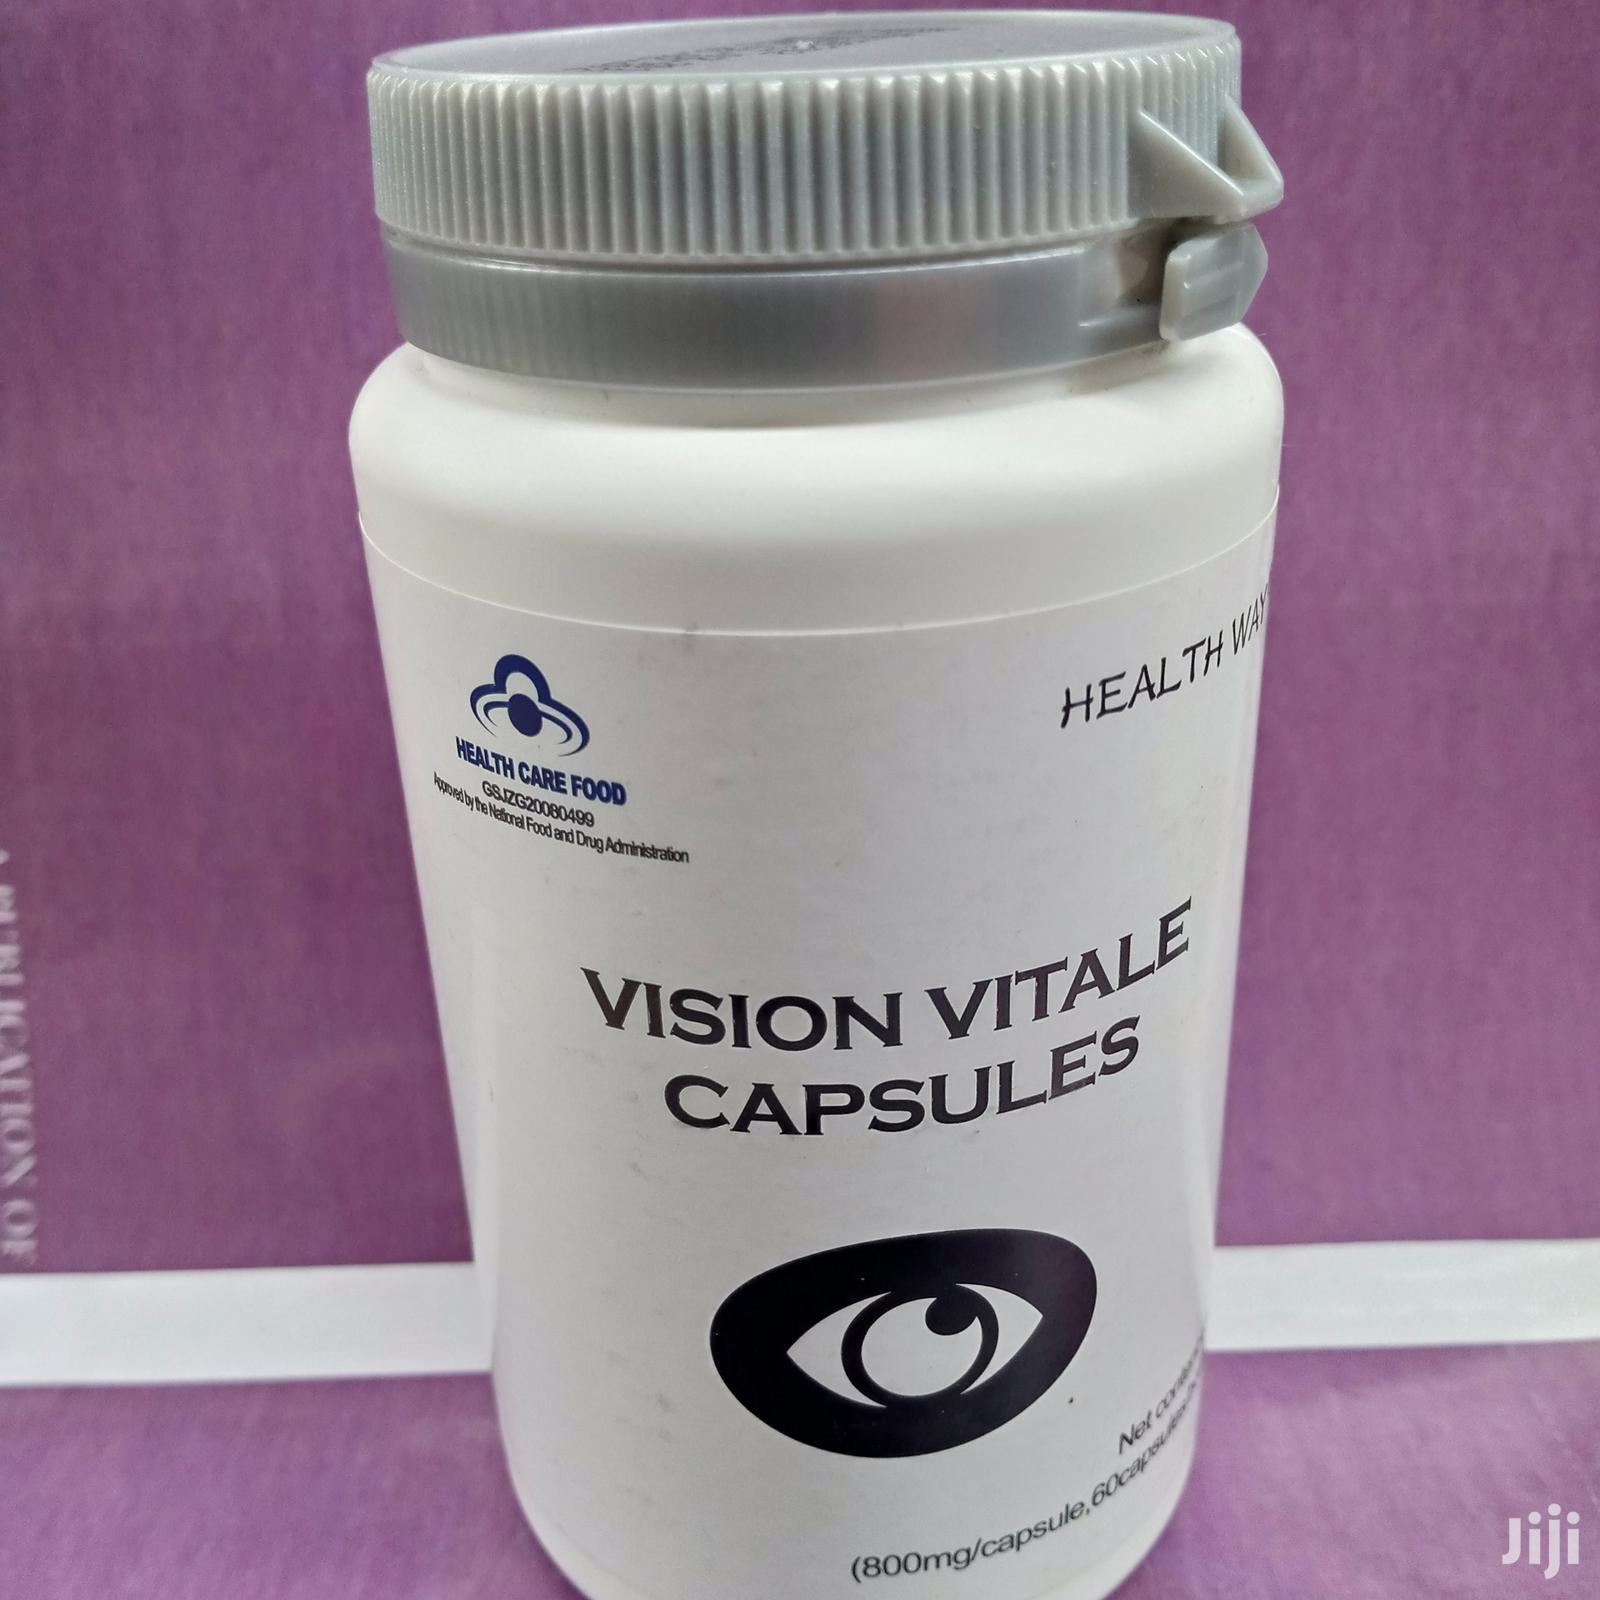 Final Cure for Glaucoma and Cataracts Is Here